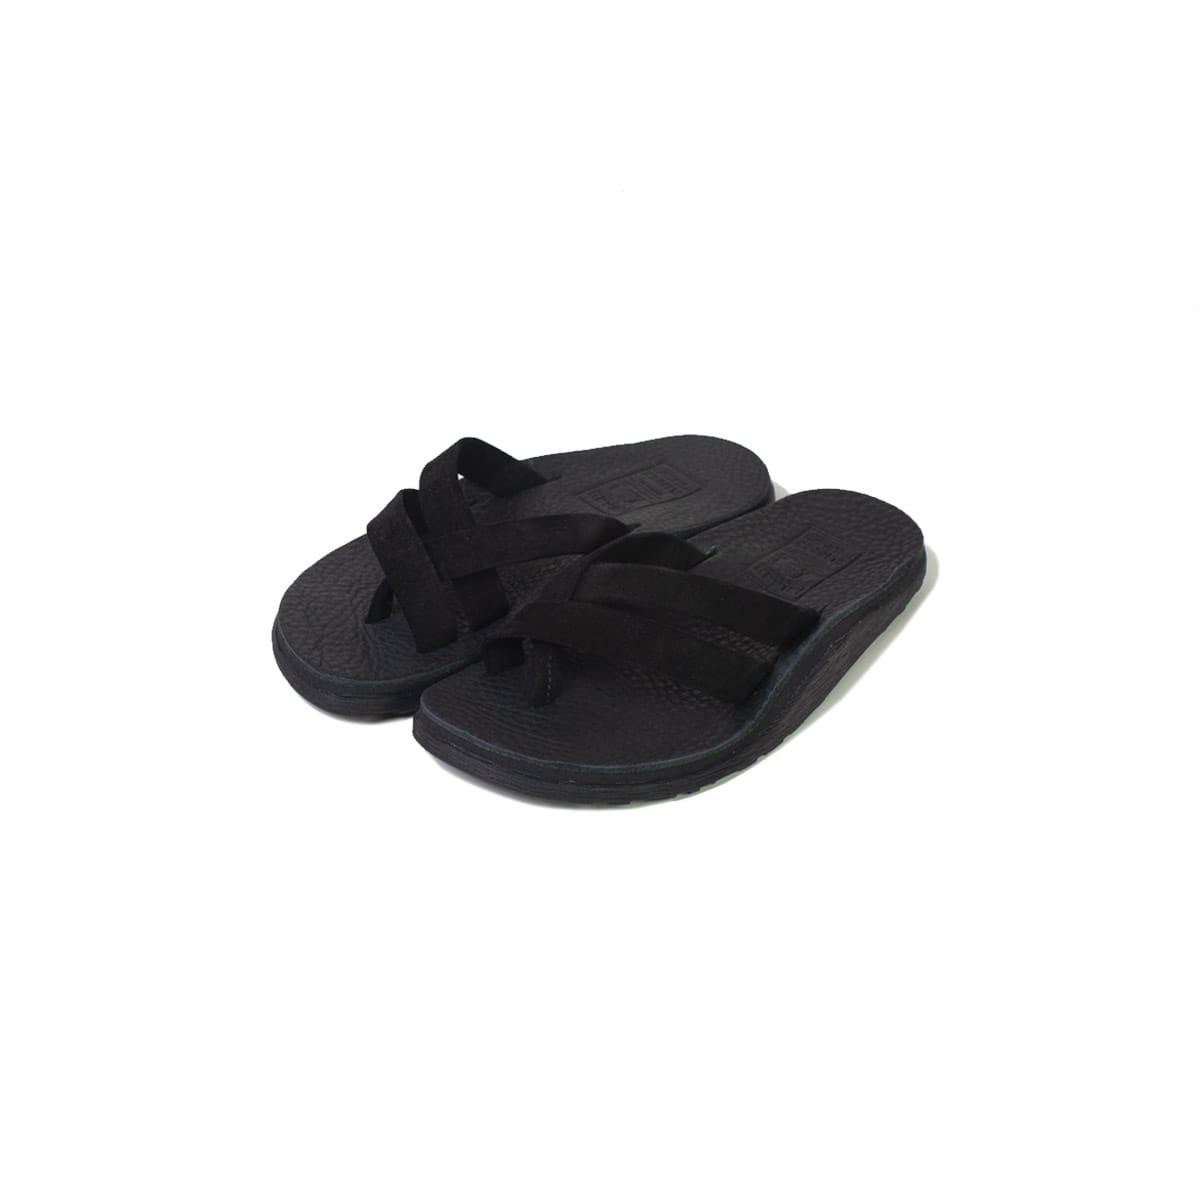 [ISLAND SLIPPER] KBBH403S 'BLACK / BLACK'